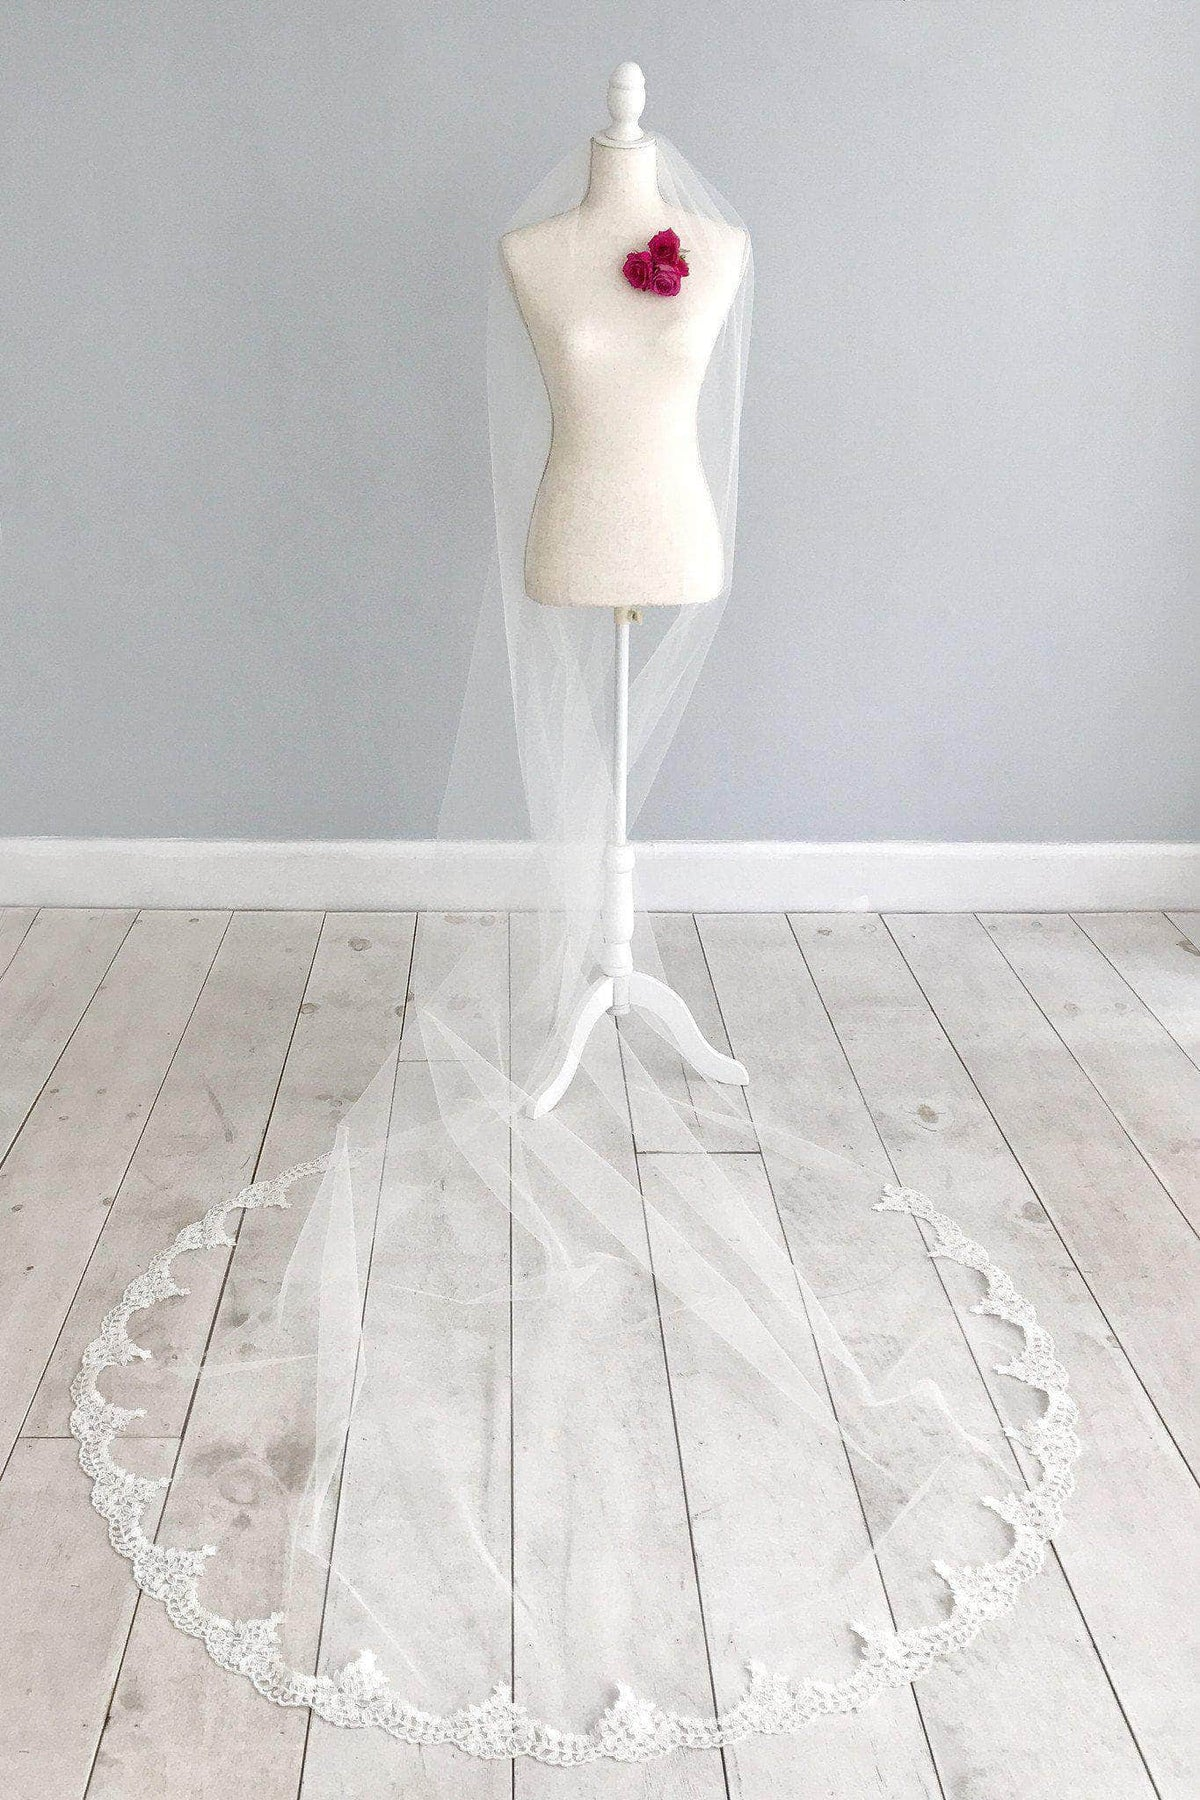 Wedding Veil Semi edged wedding veil with lace around train - 'Poppy'